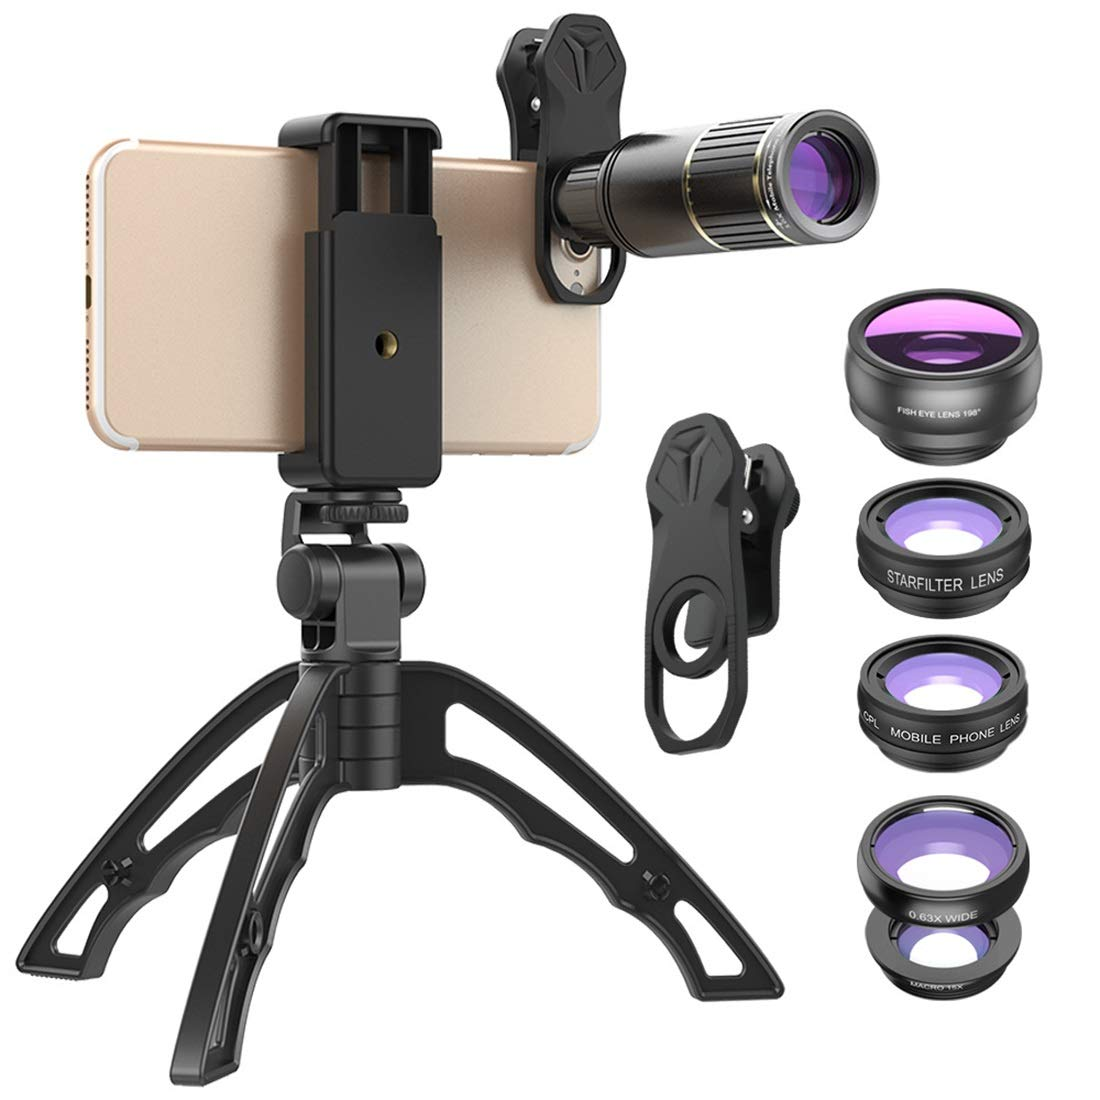 Kathleen Chance Smartphones 6in1 Phone Camera Lens Kit 16x Telephoto Lens+Fisheye/Star Filter/CPL/Wide Angle/Macro Lens with Tripod for iPhone Samsung Most